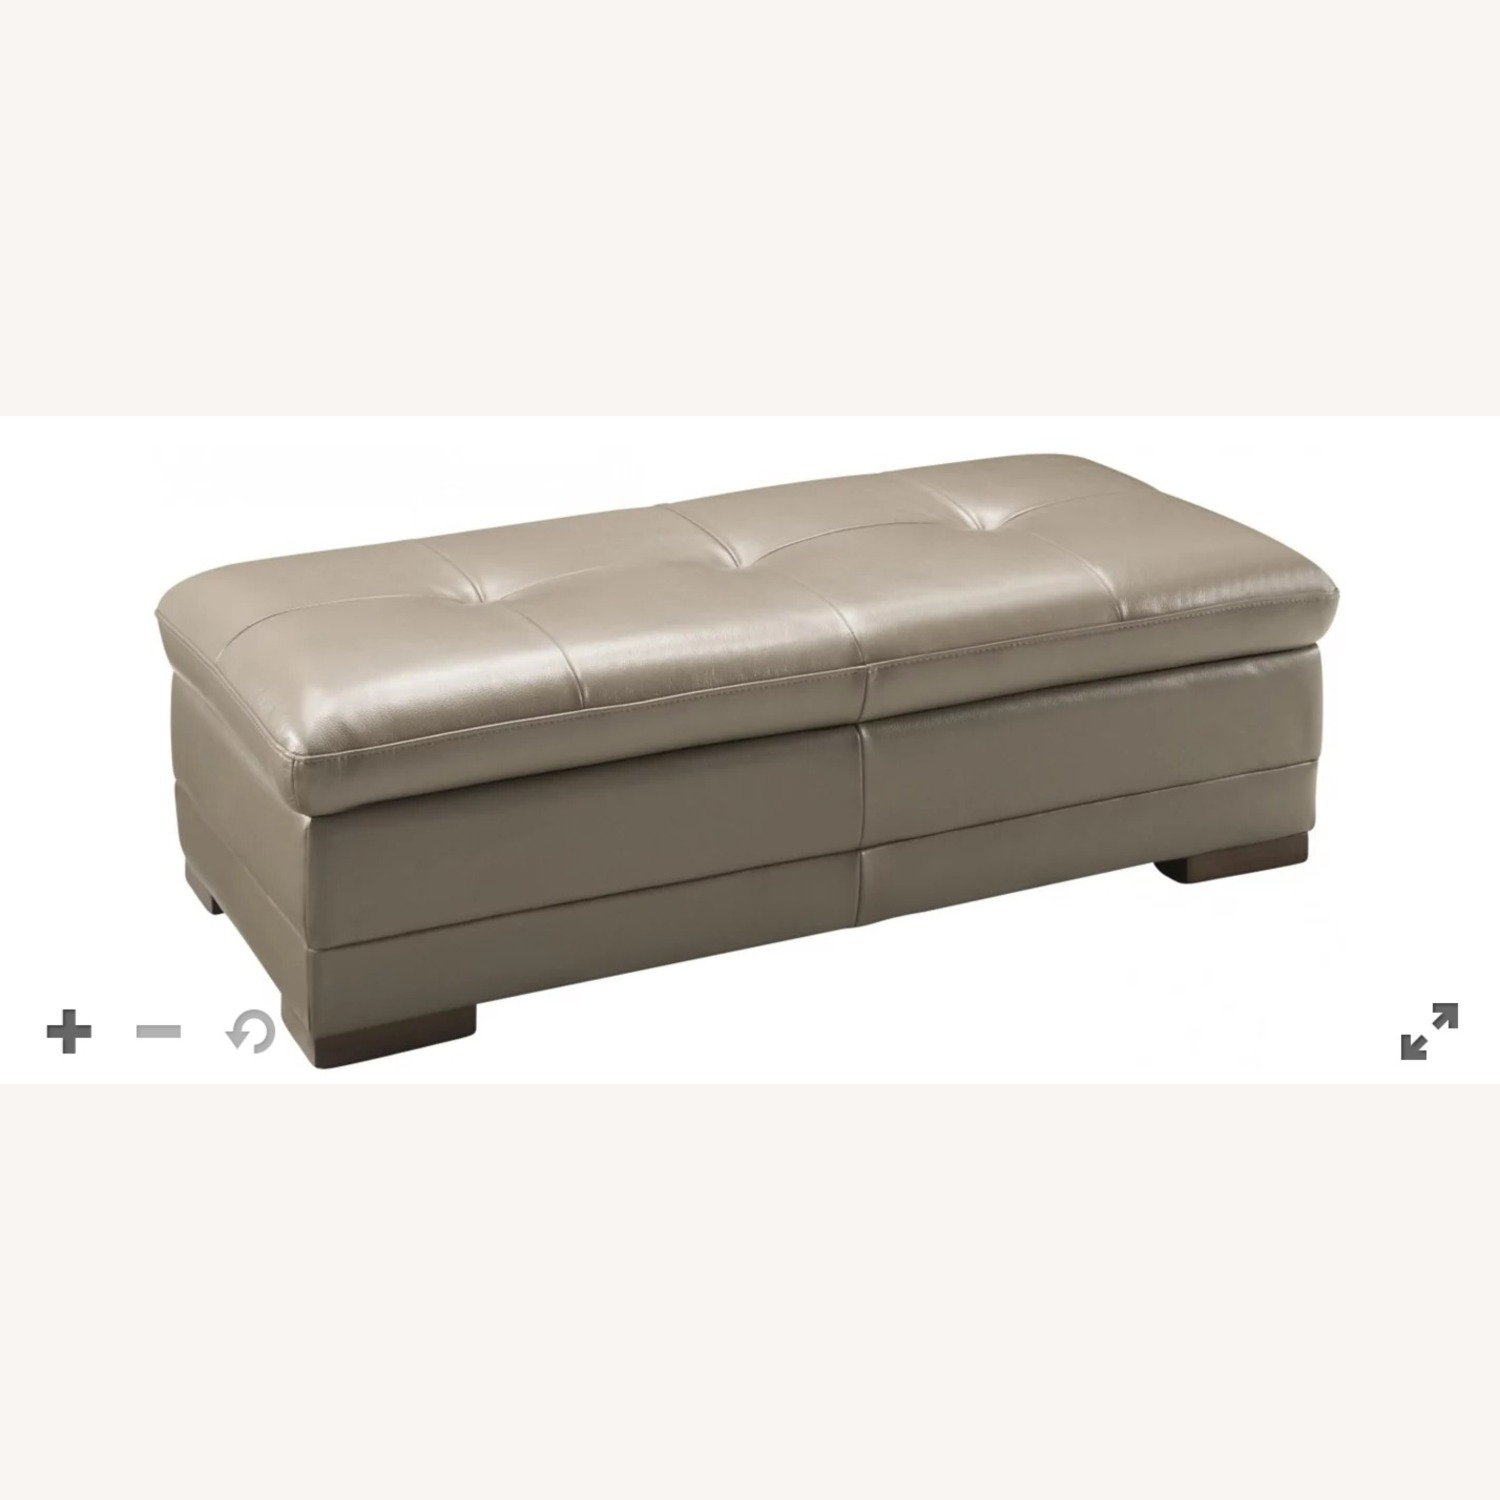 Raymour & Flanigan Taupe Leather Cocktail Ottoman - image-1